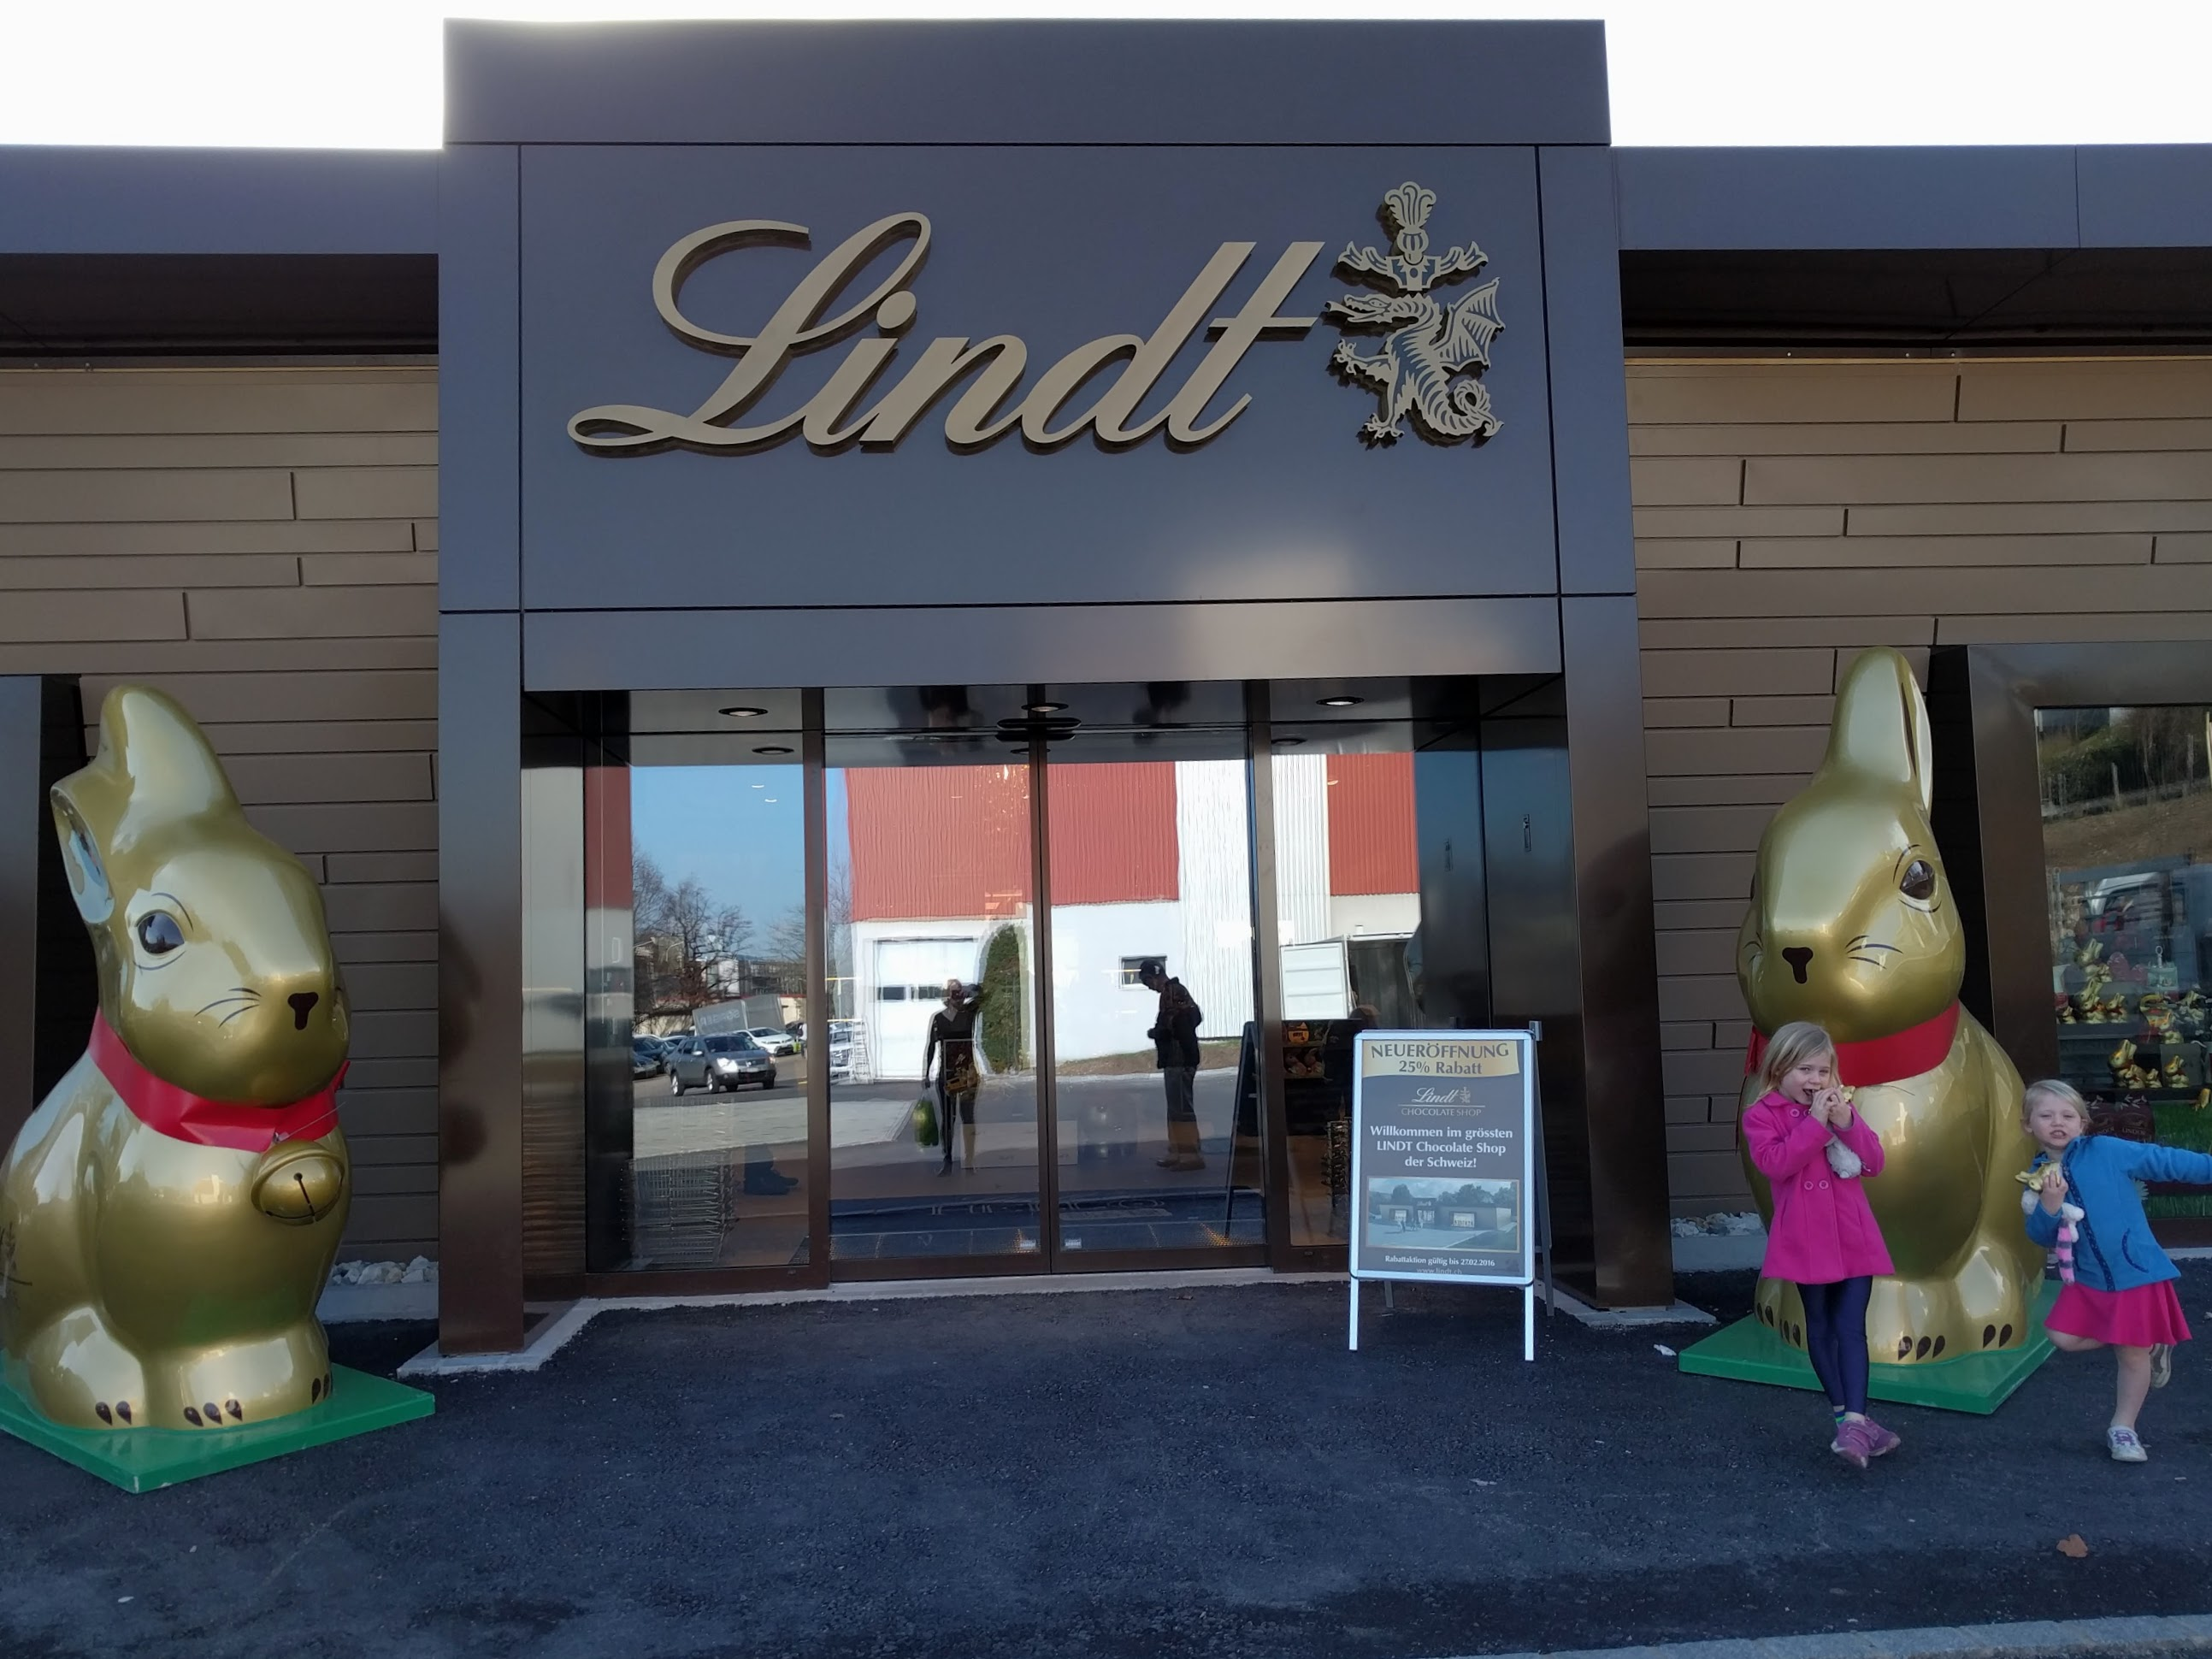 The new Lindt Chocolate shop